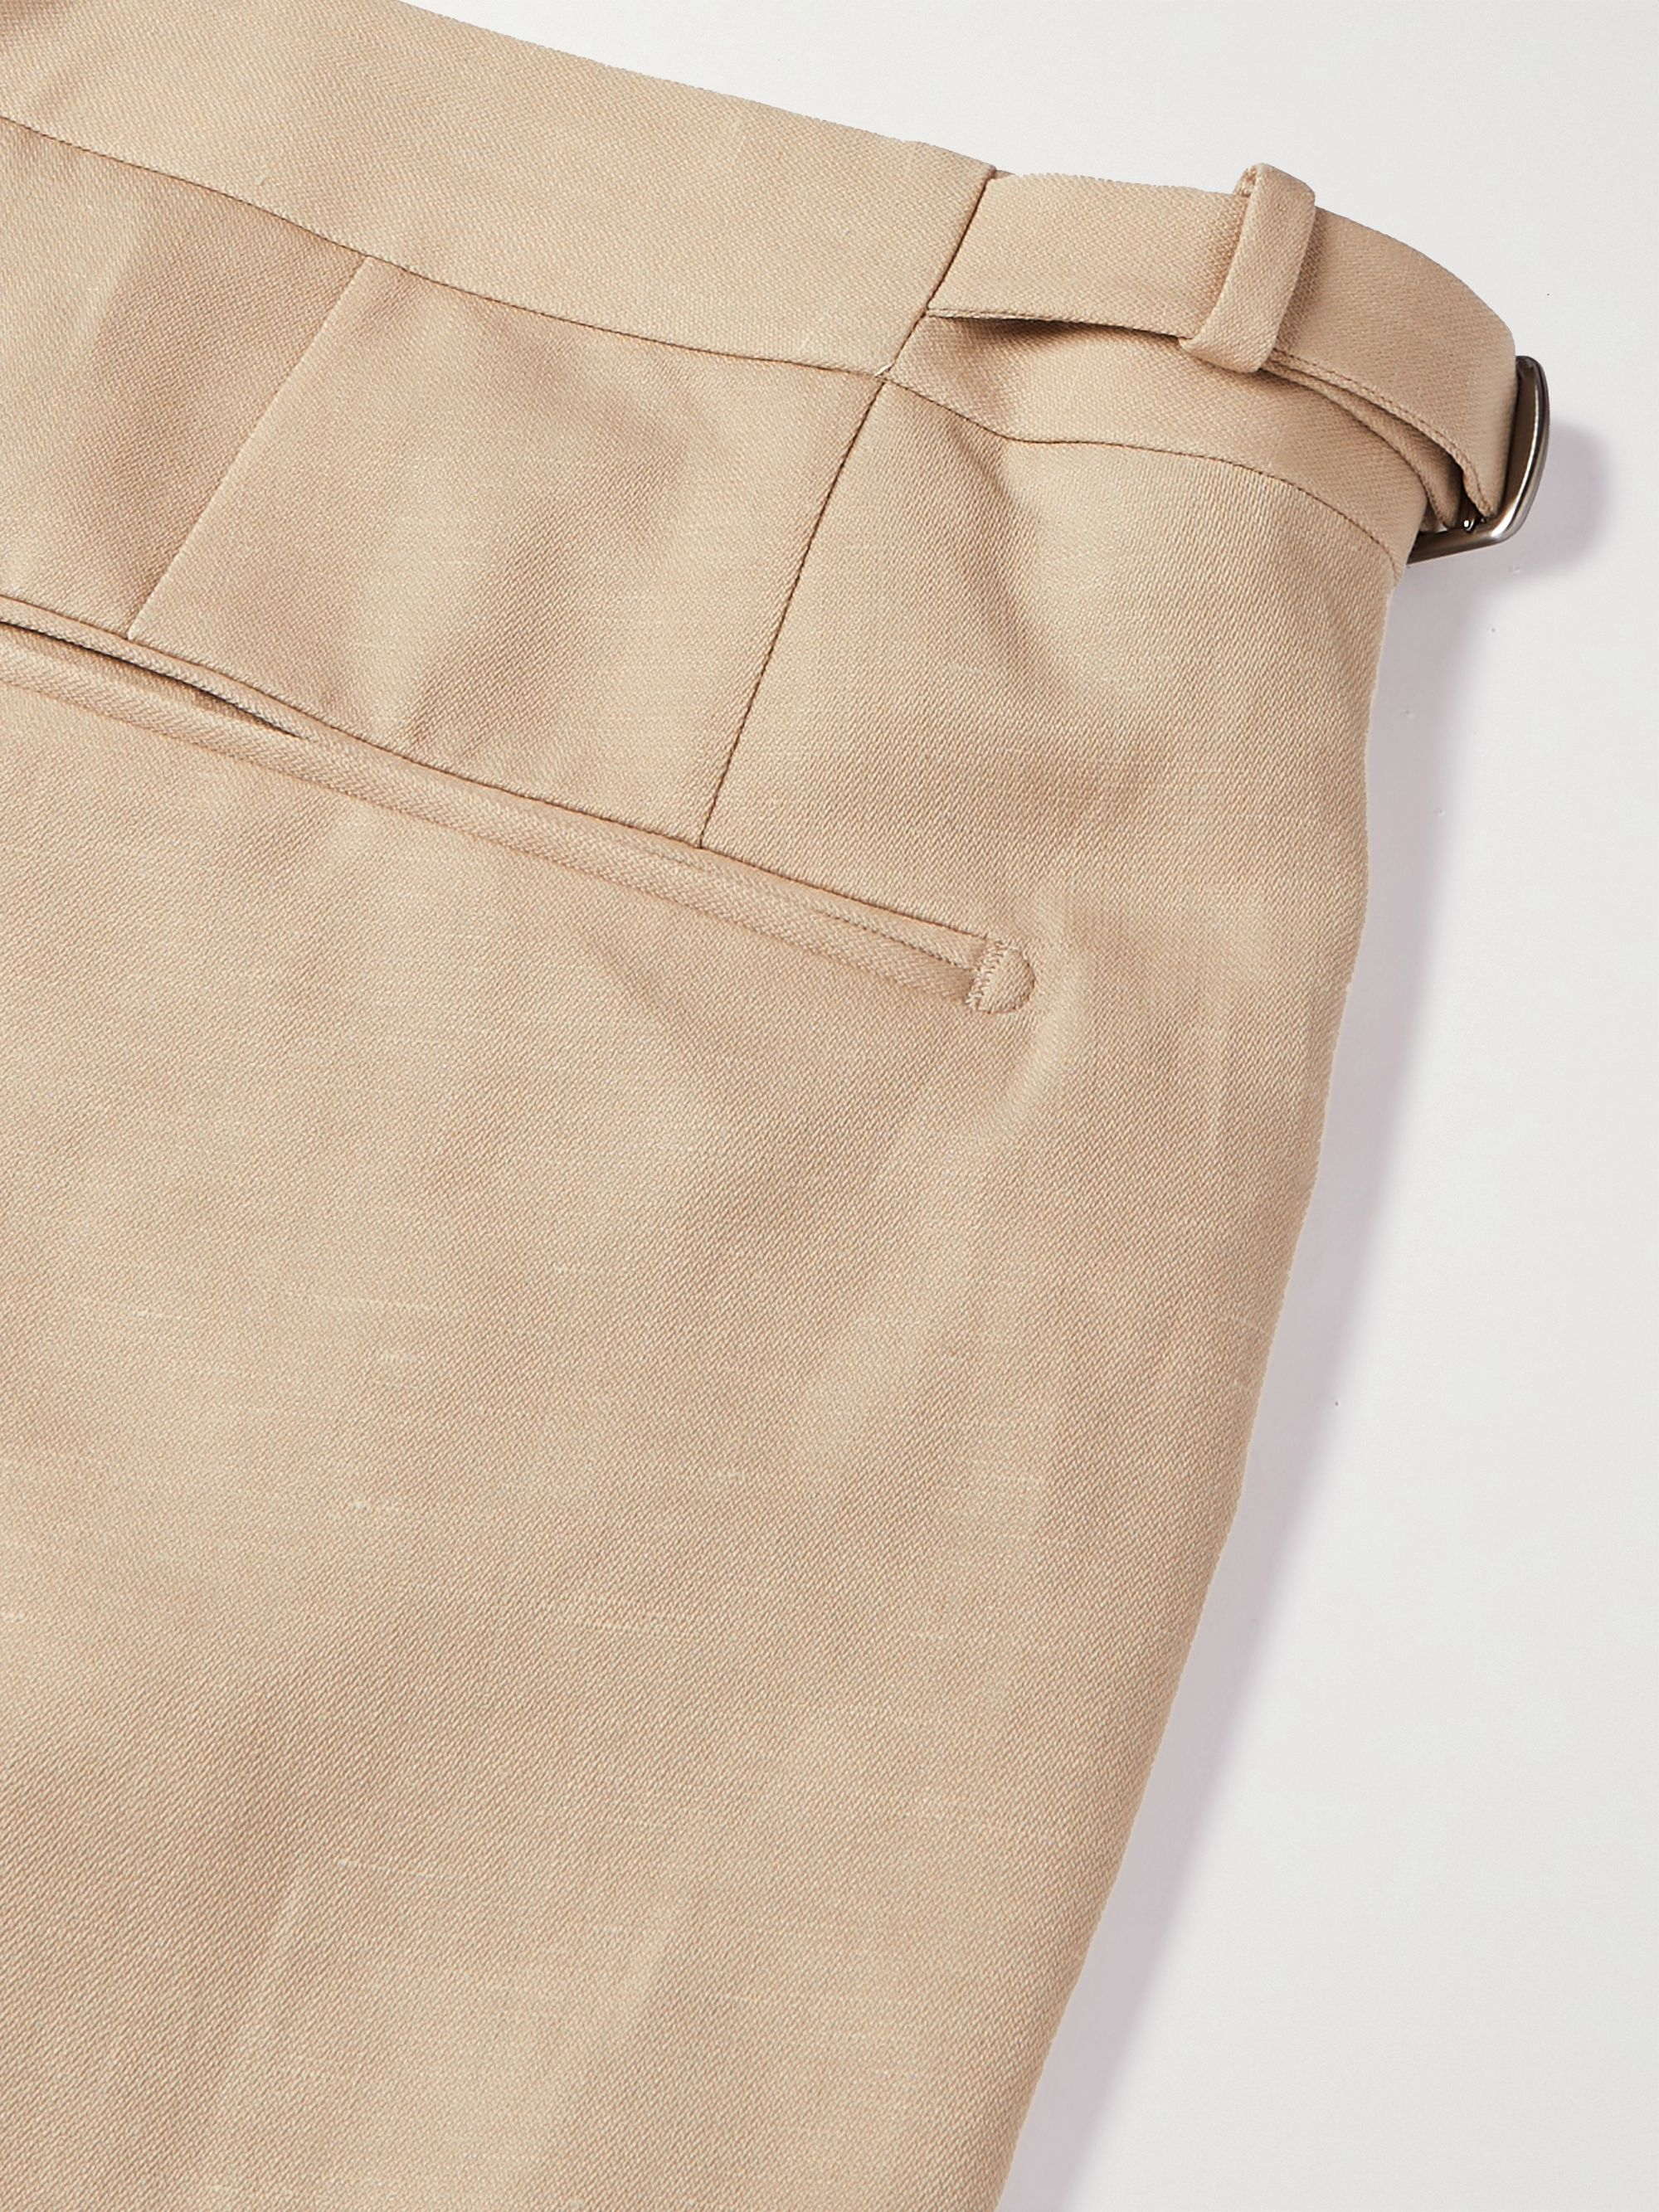 ERMENEGILDO ZEGNA Slim-Fit Wool and Linen-Blend Trousers